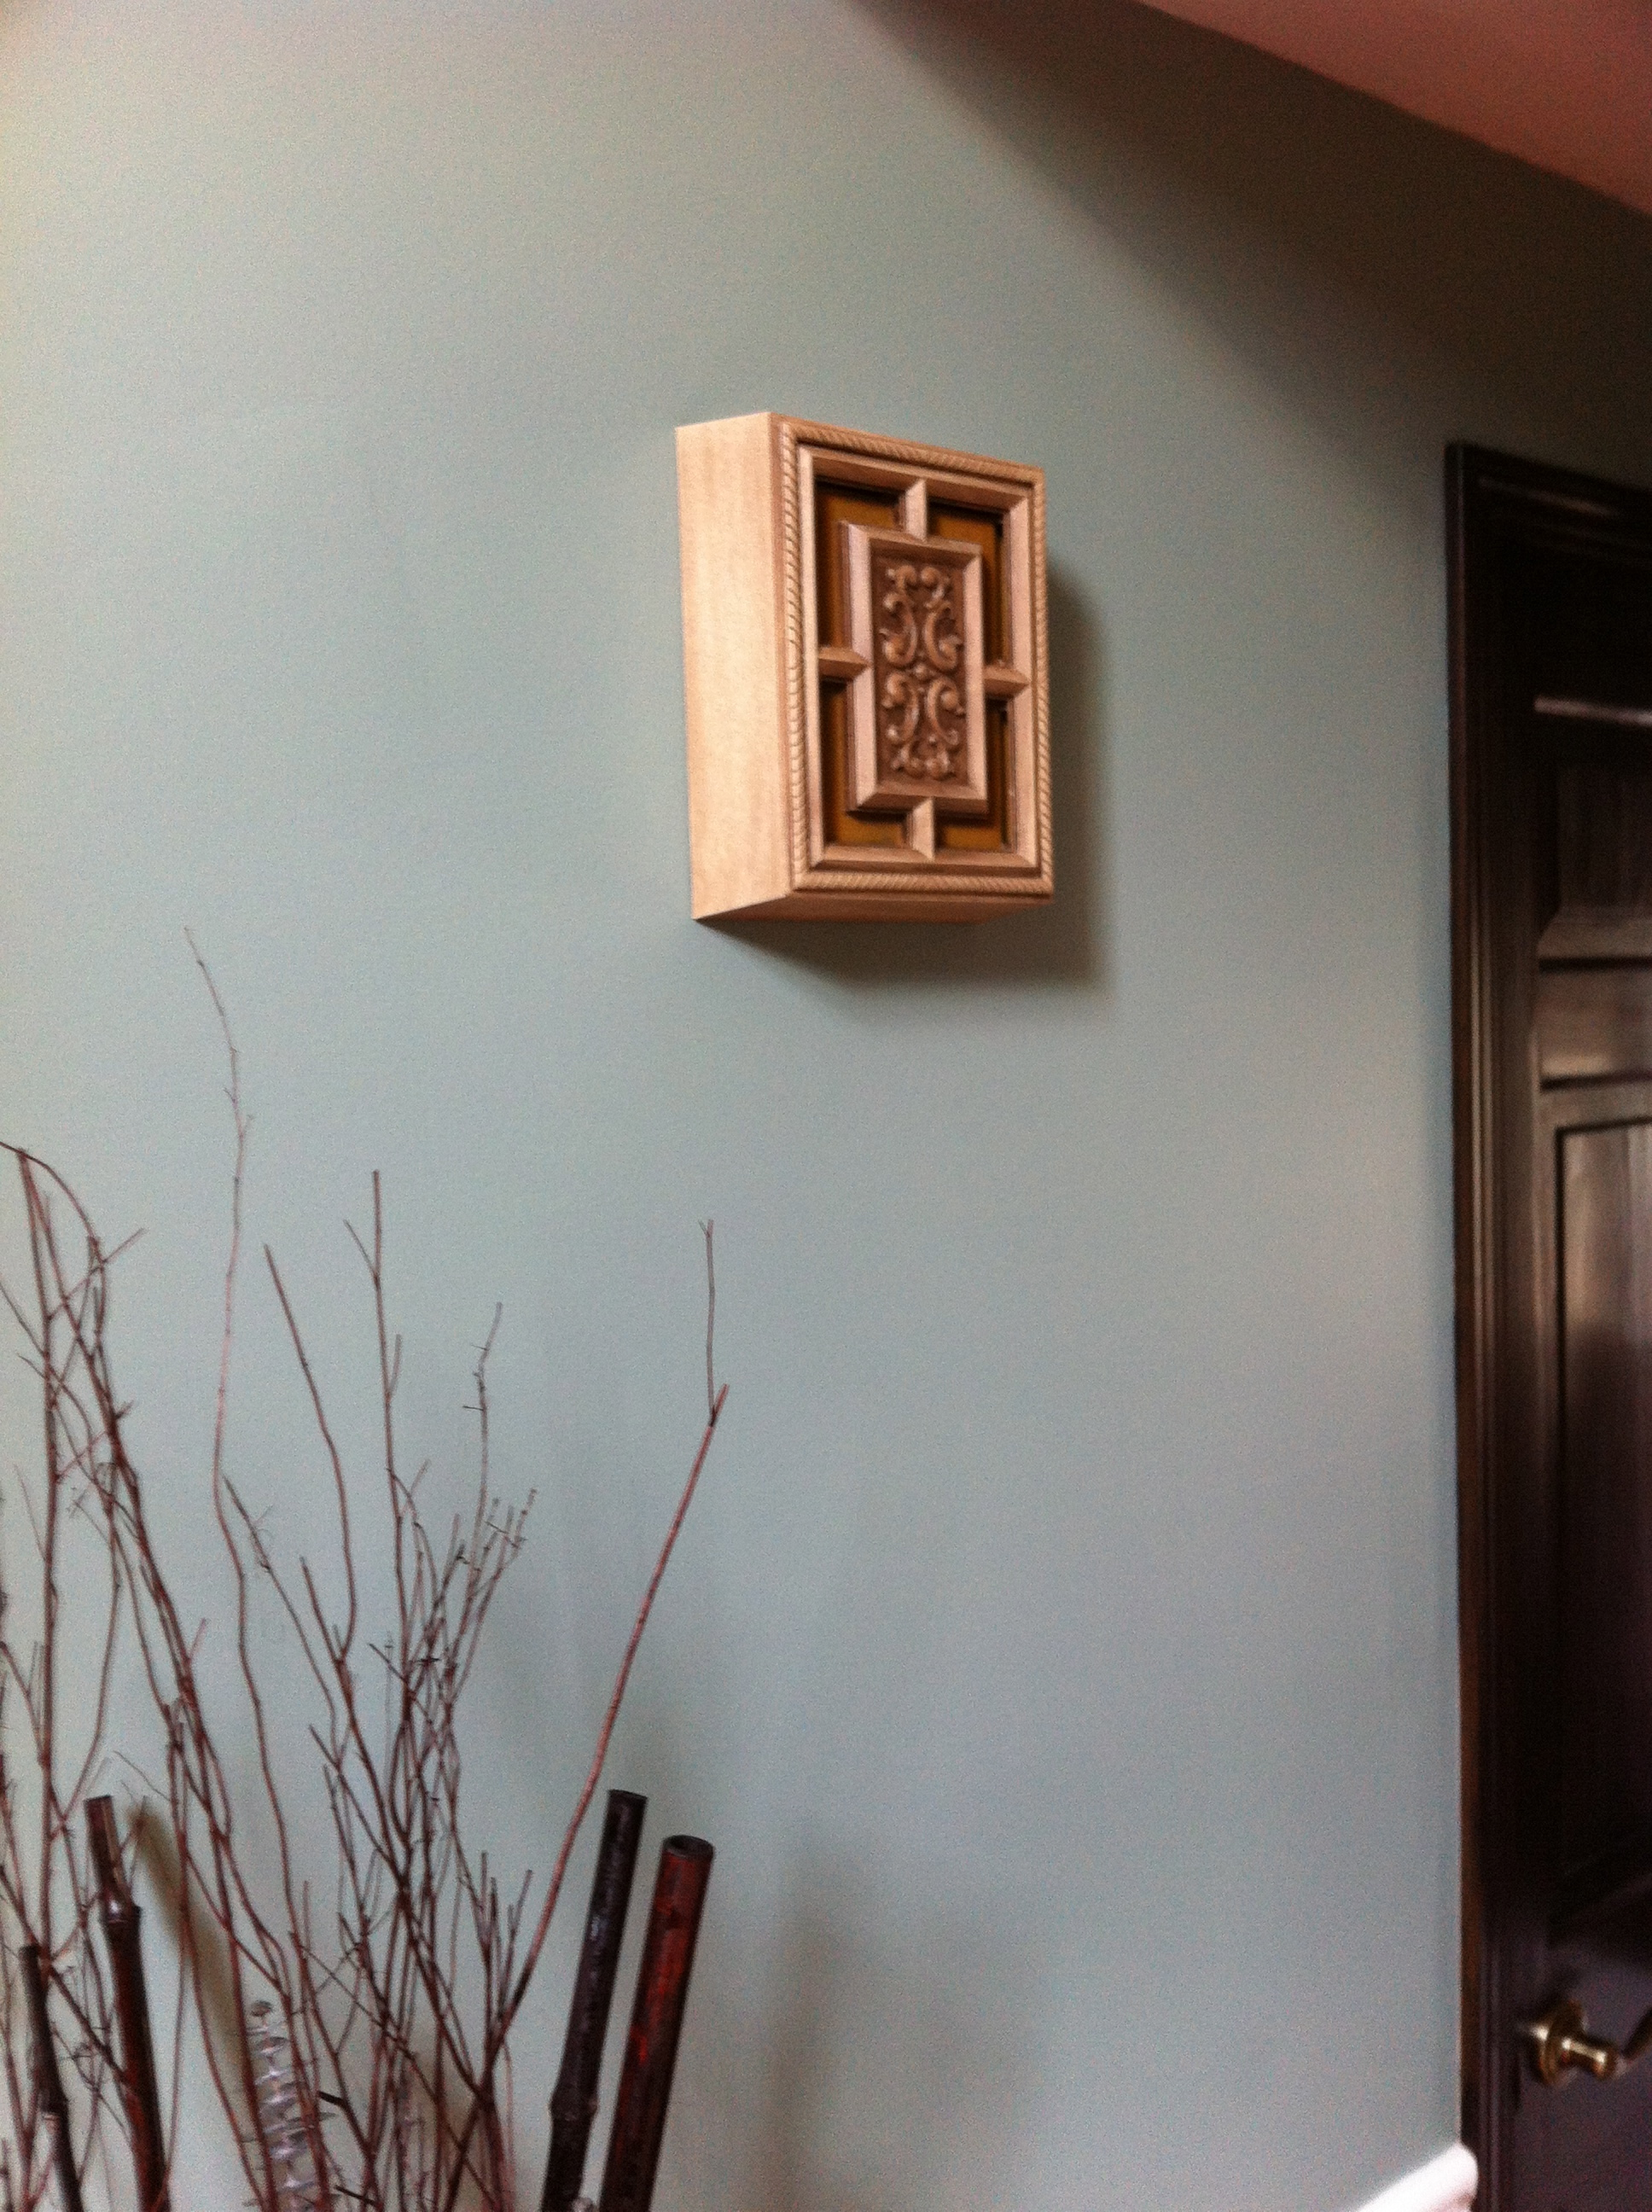 Wall sconce doorbell cover Digital Woodworker